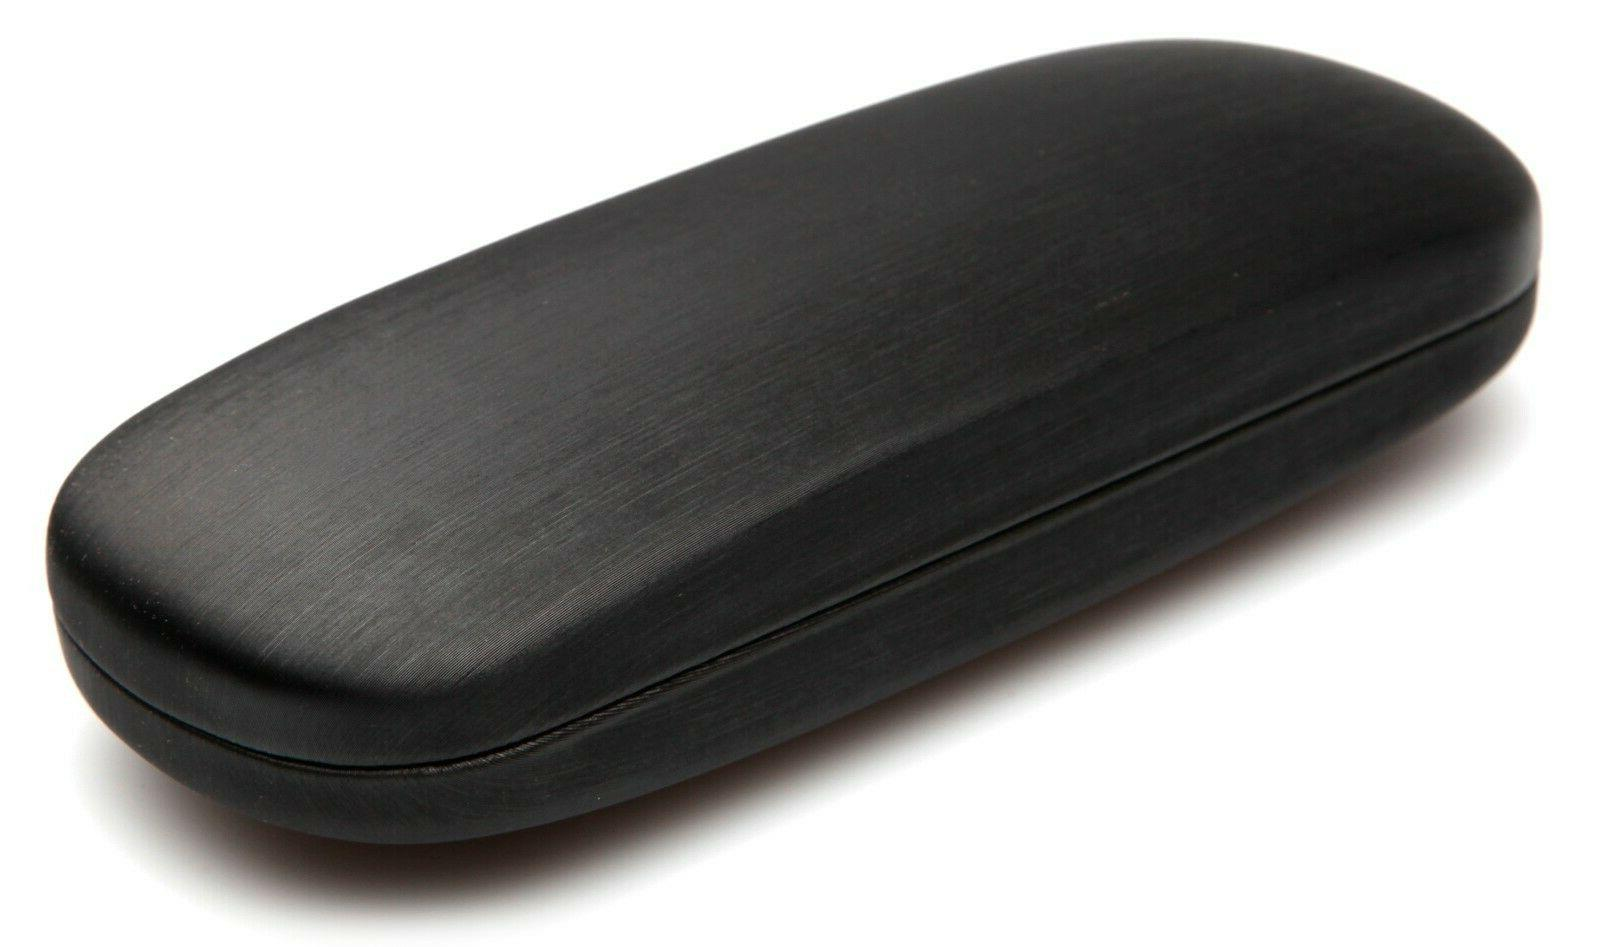 NEW Clam Shell Eyeglasses Glasses Case w/ Microfiber Cleaning Cloth